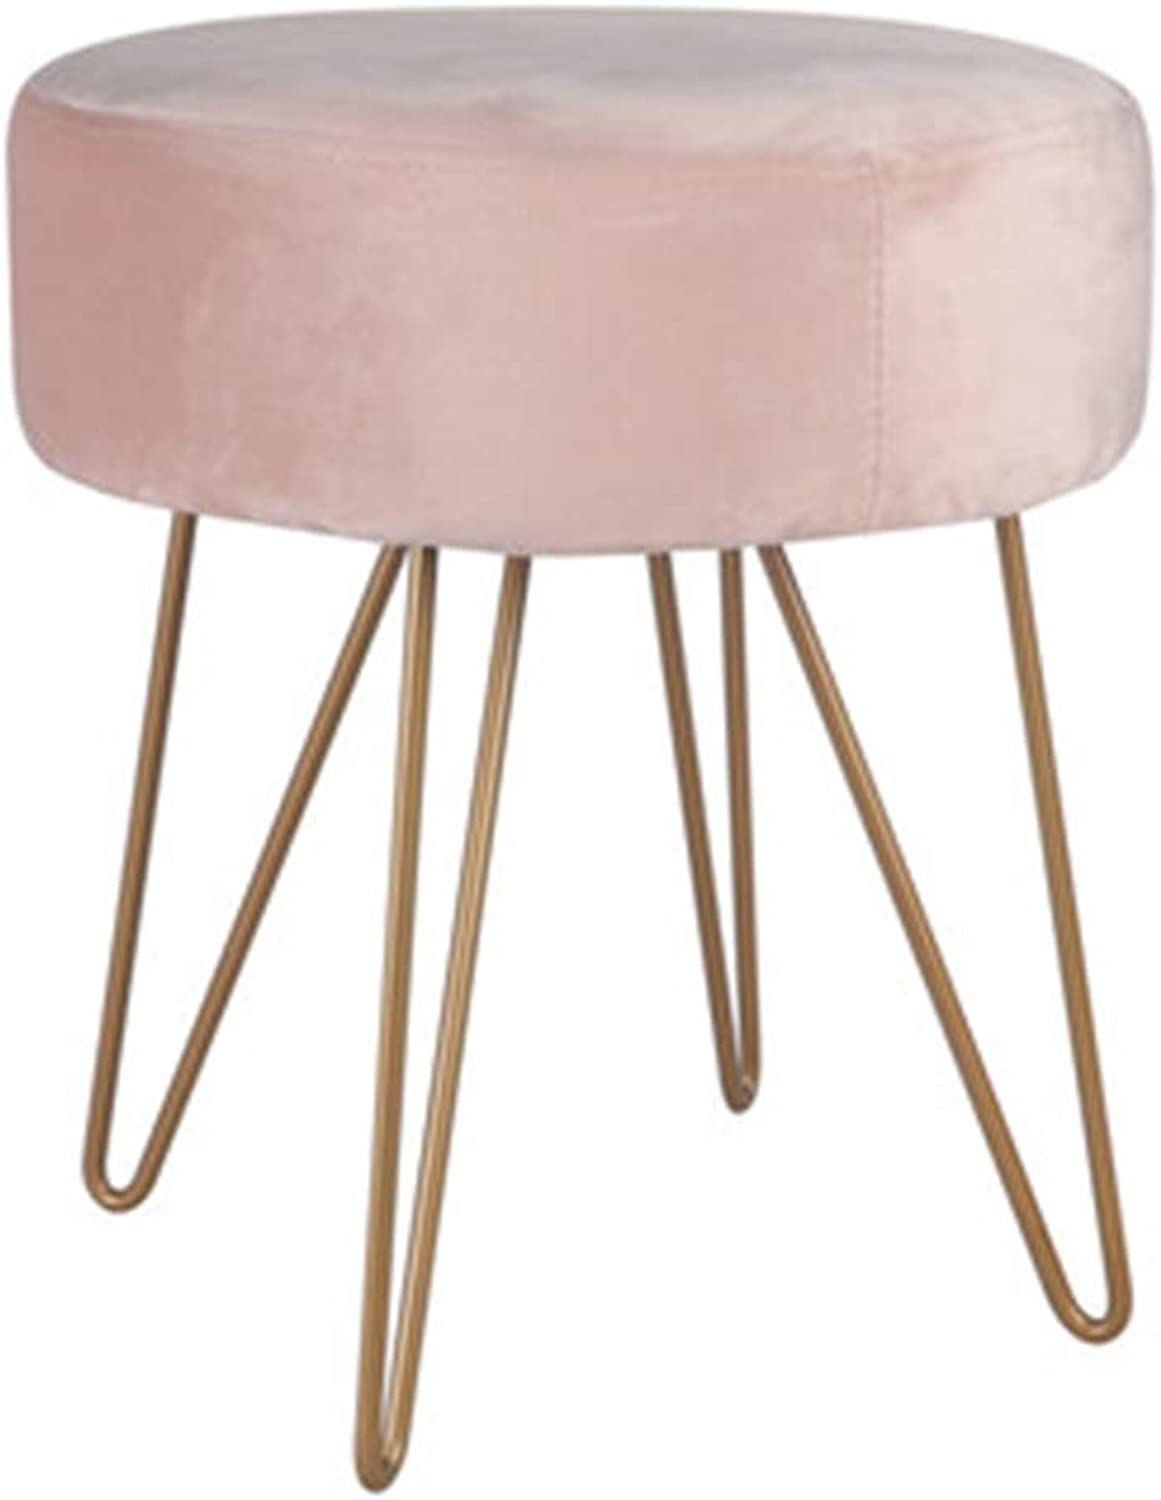 Stool Nordic Wrought Iron Dressing Stool Modern Minimalist shoes Footstool Detachable and Clean Cloth Cover Bedroom Living Room,A